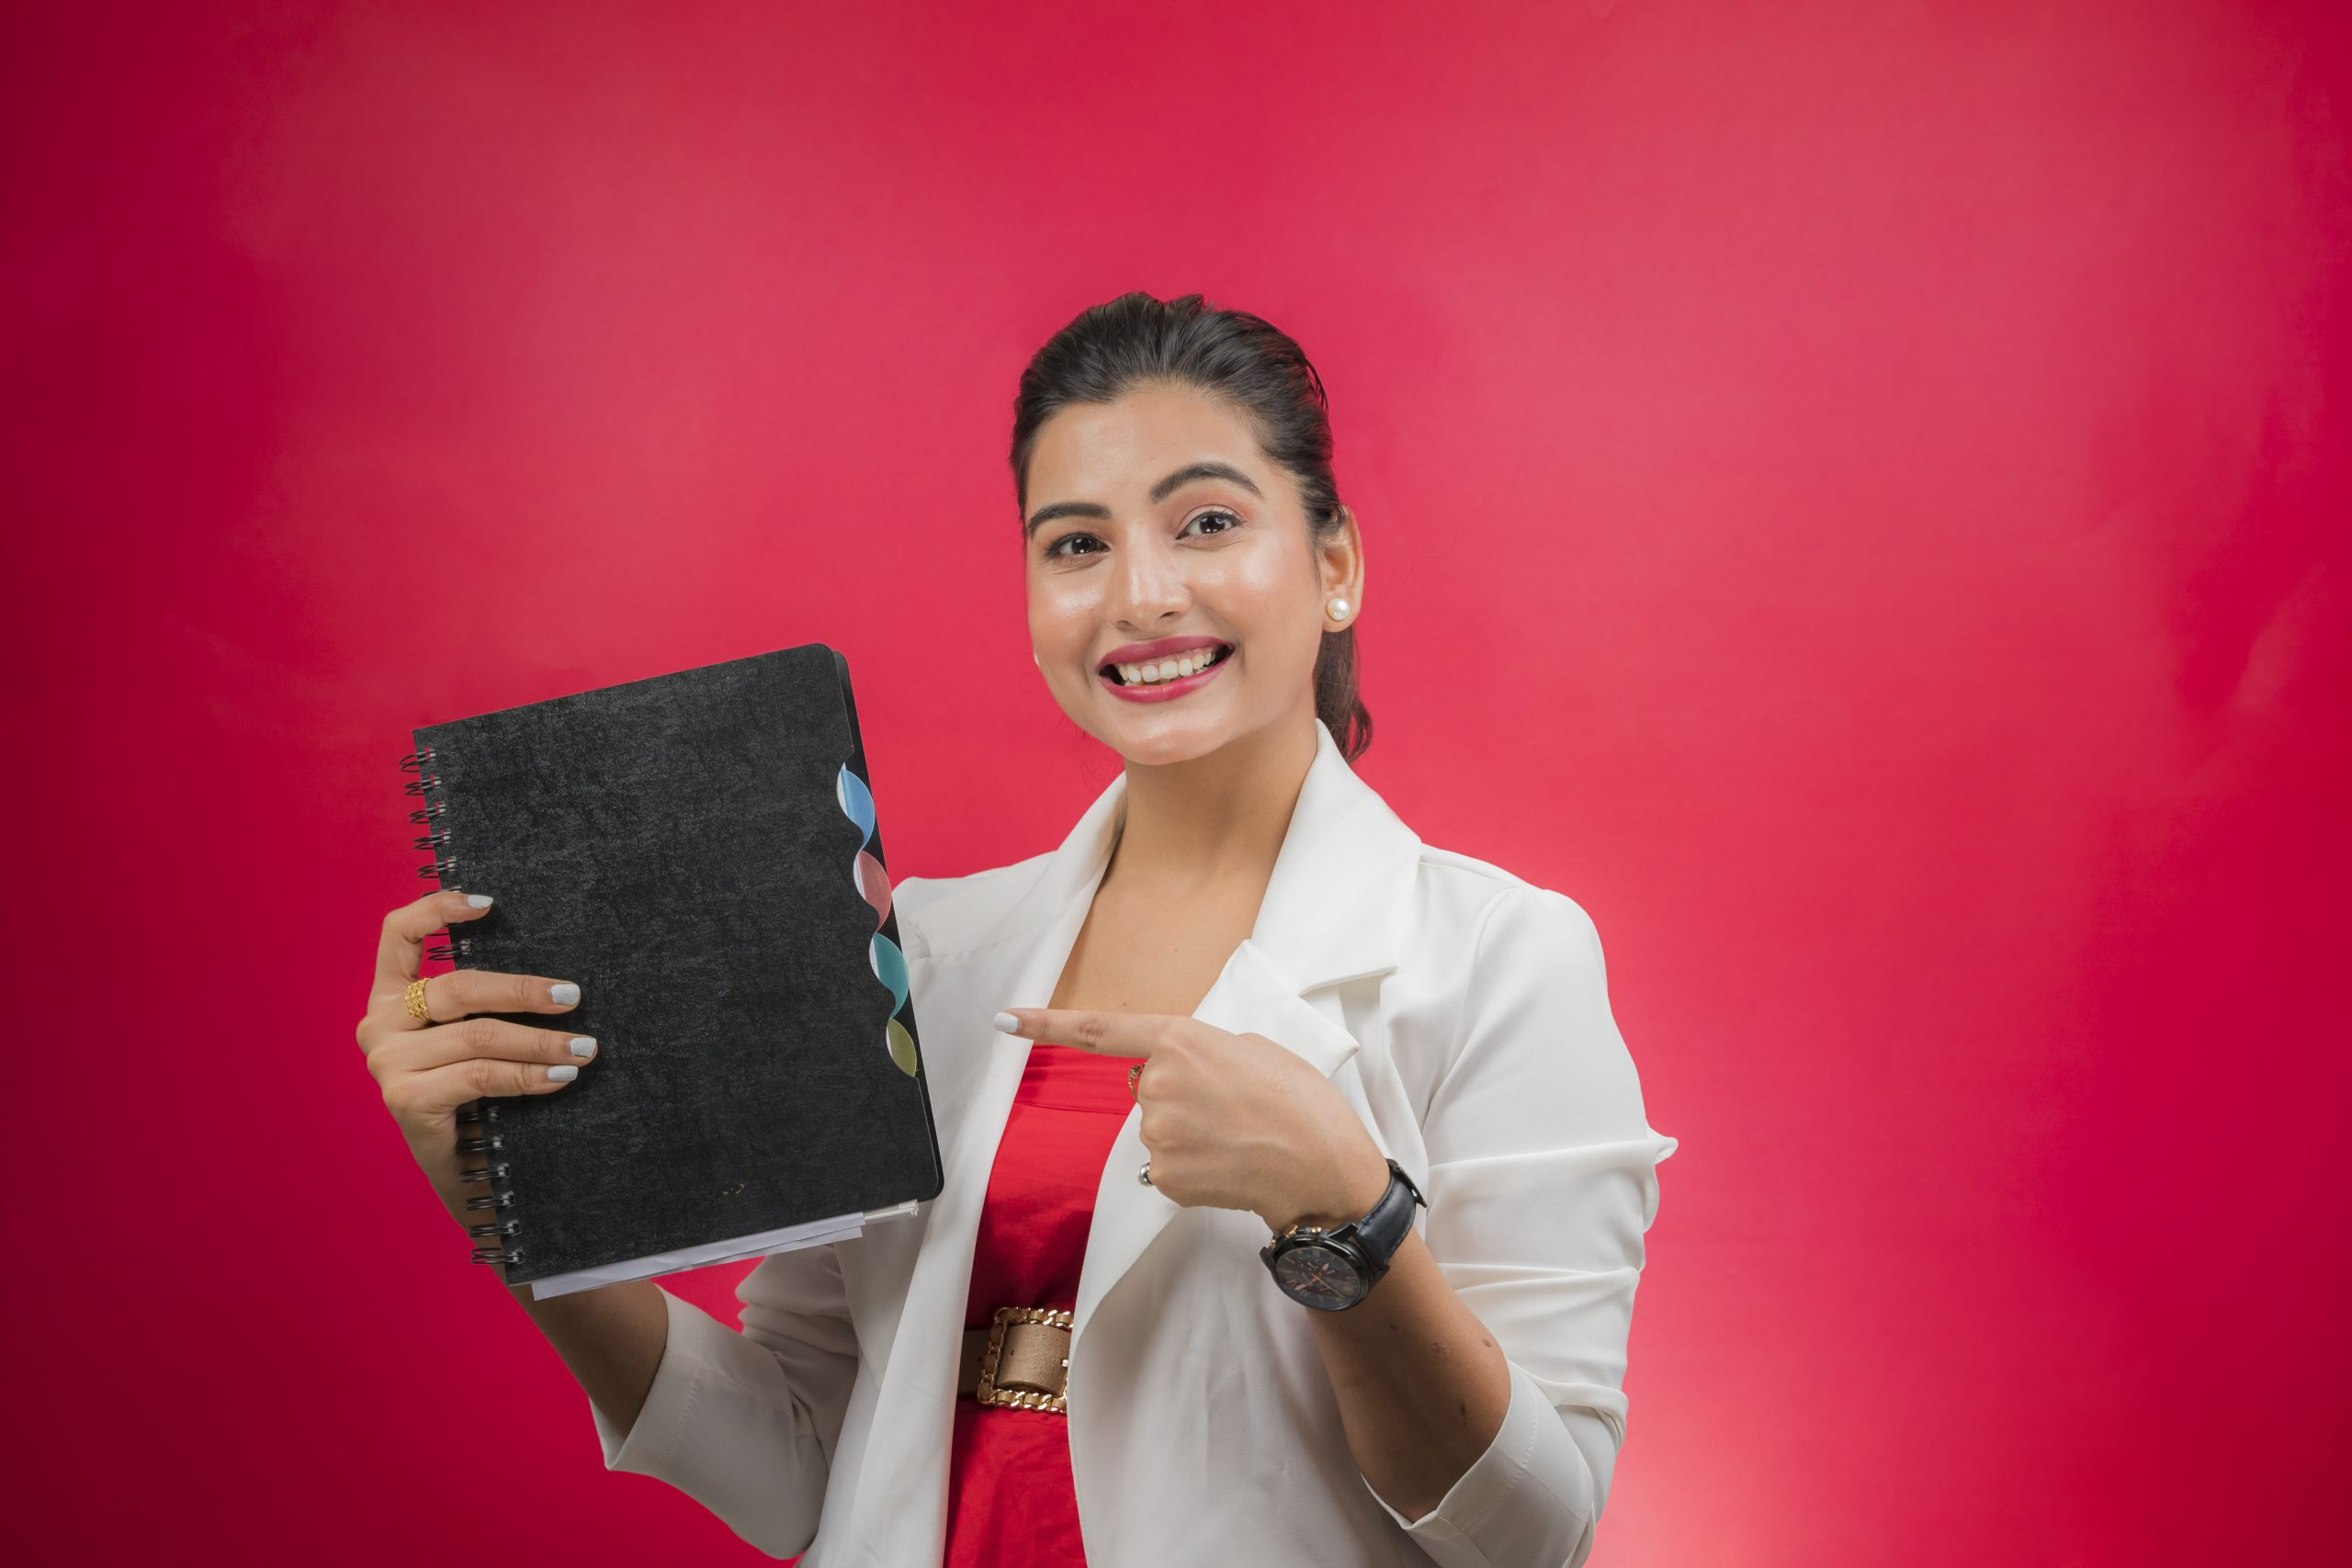 Indian girl pointing to Notebook